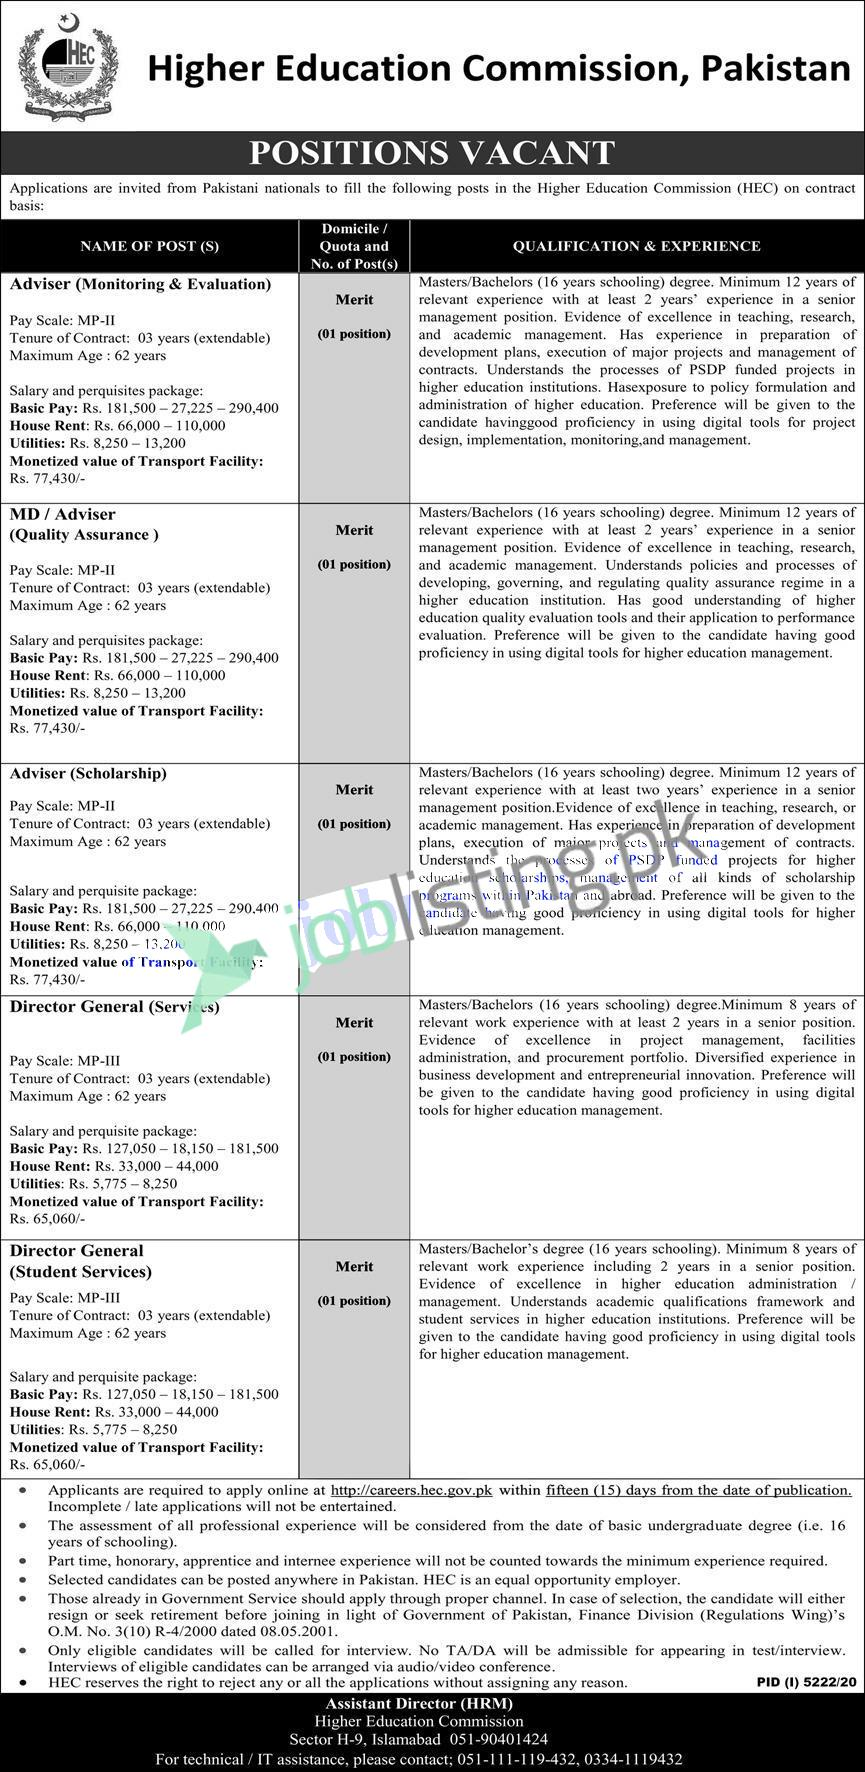 HEC Higher Education Commission Jobs 2021